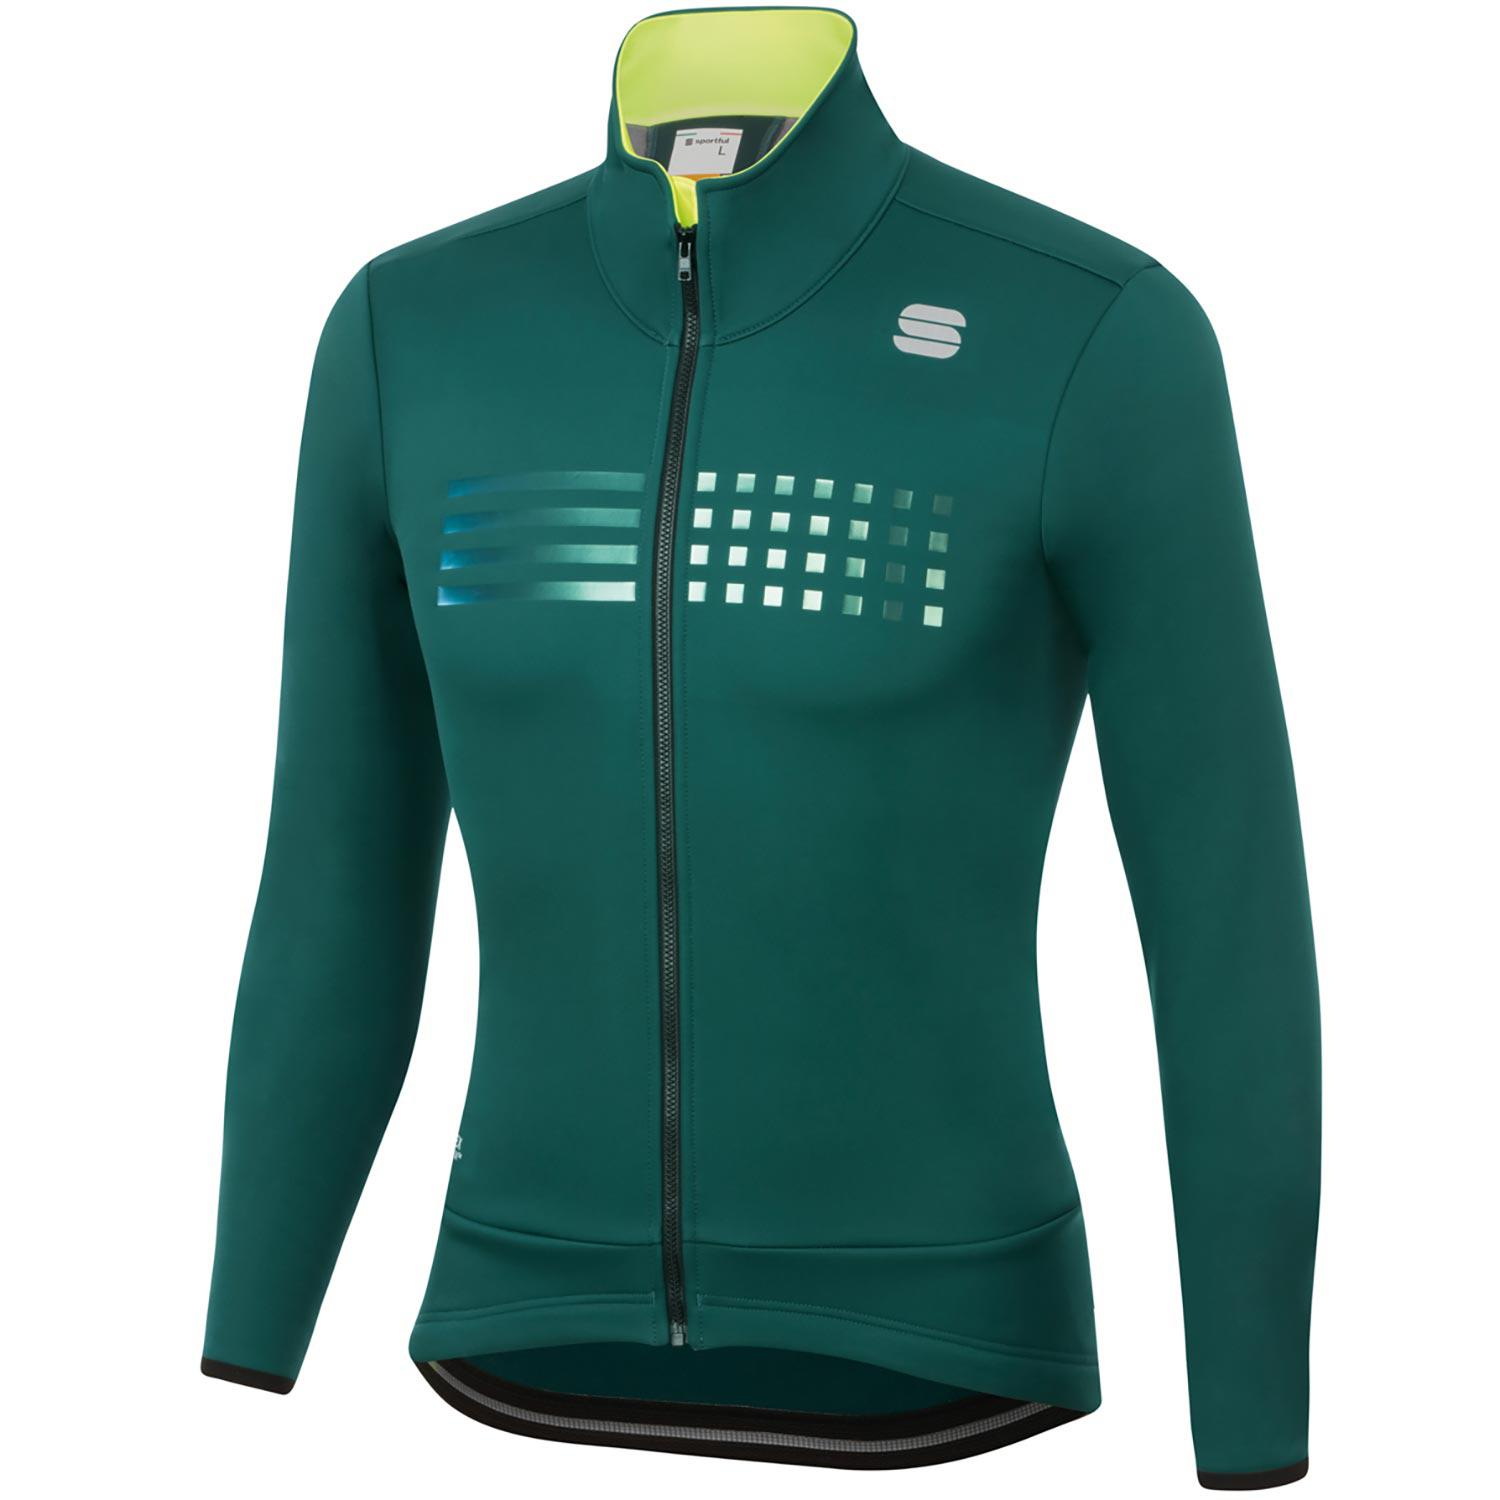 Sportful-Sportful Tempo Jacket-Sea Moss-S-SF205123292-saddleback-elite-performance-cycling